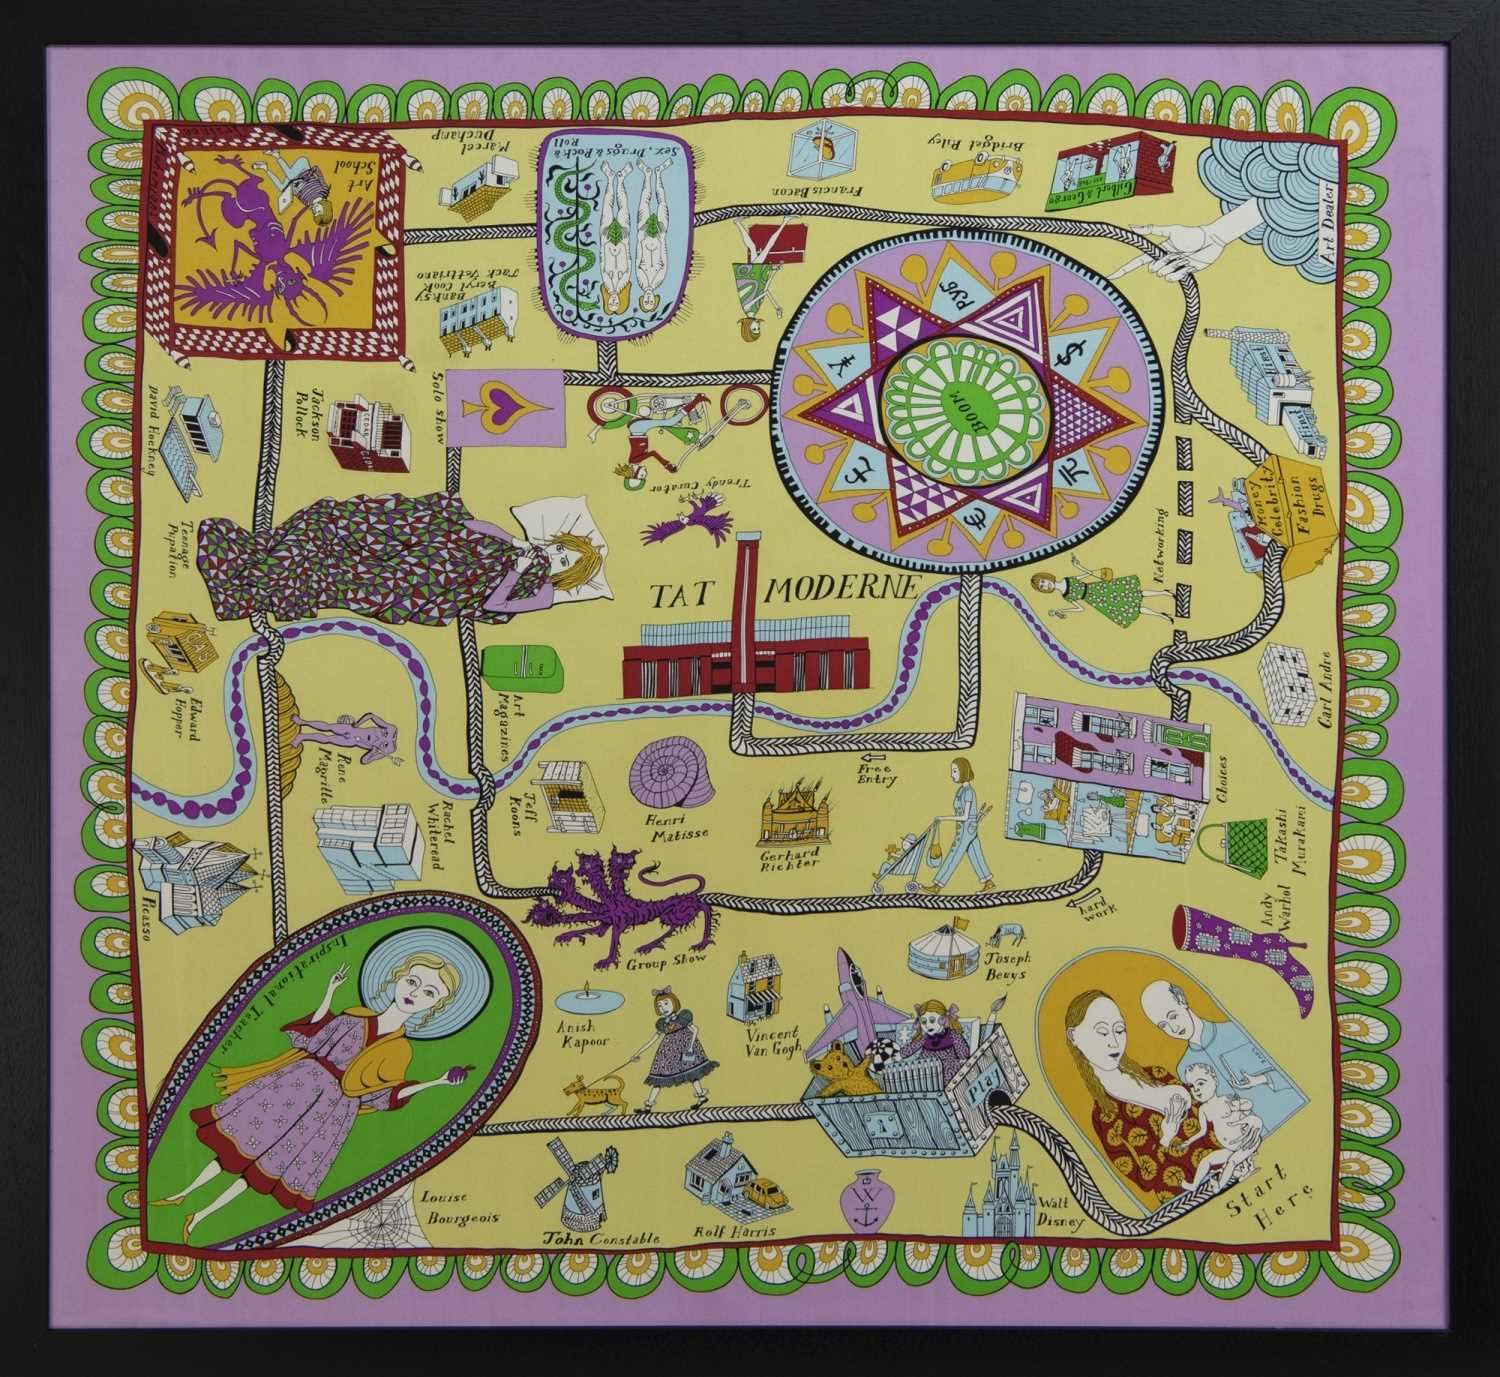 Lot 637 - 100% SILF SCARF BY GRAYSON PERRY